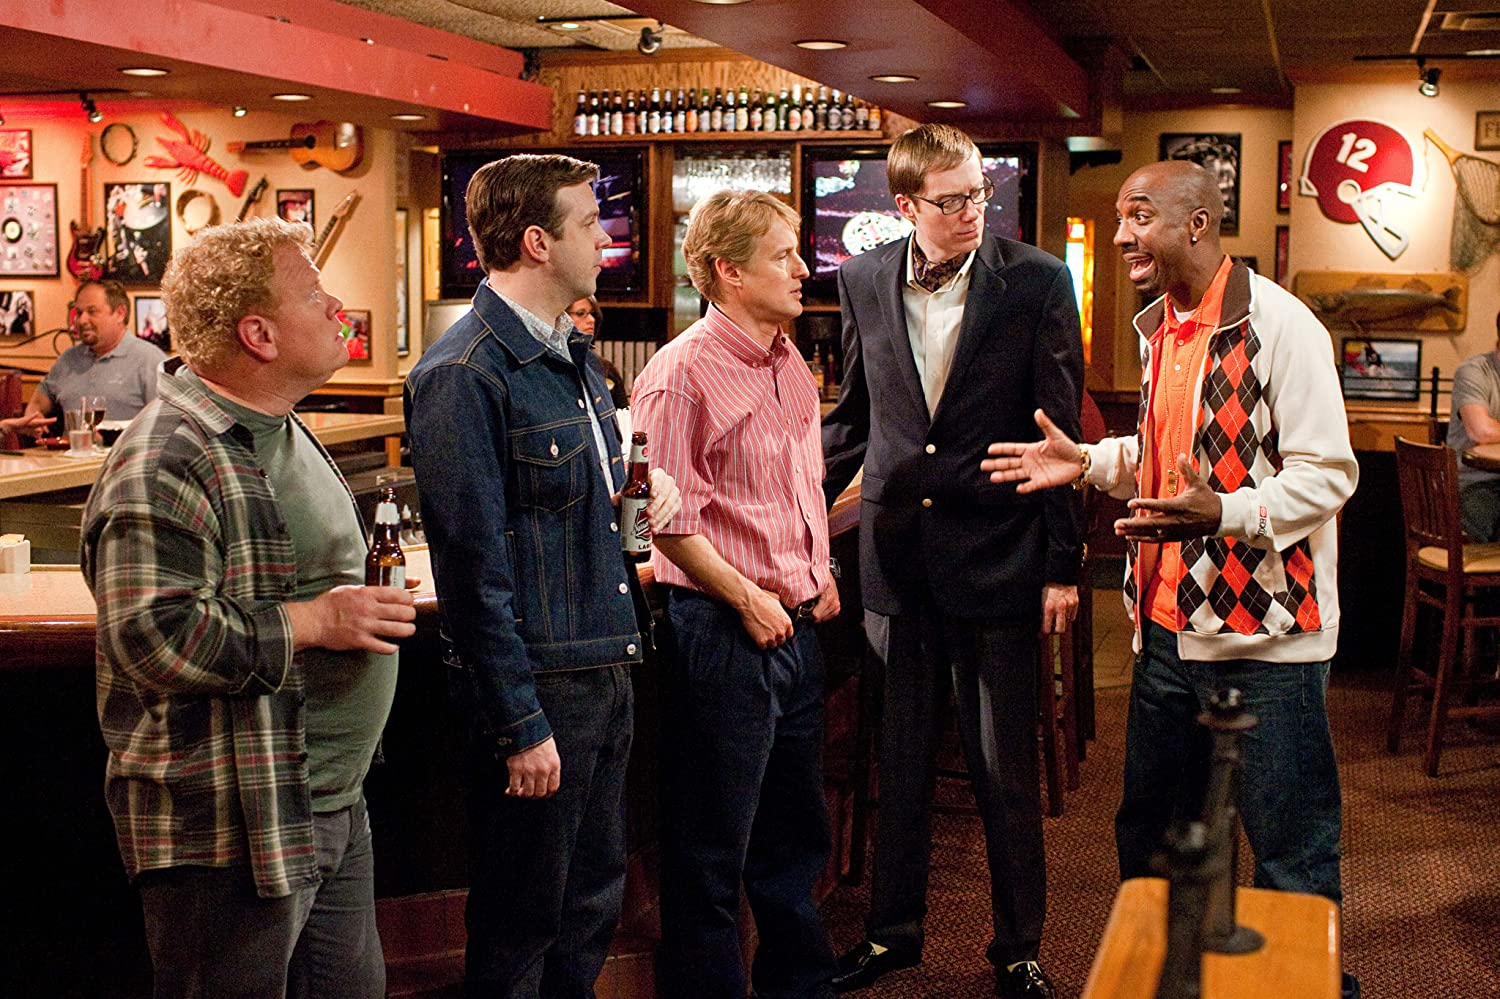 Owen Wilson, Larry Joe Campbell, Stephen Merchant, Jason Sudeikis, and J.B. Smoove in Hall Pass (2011)